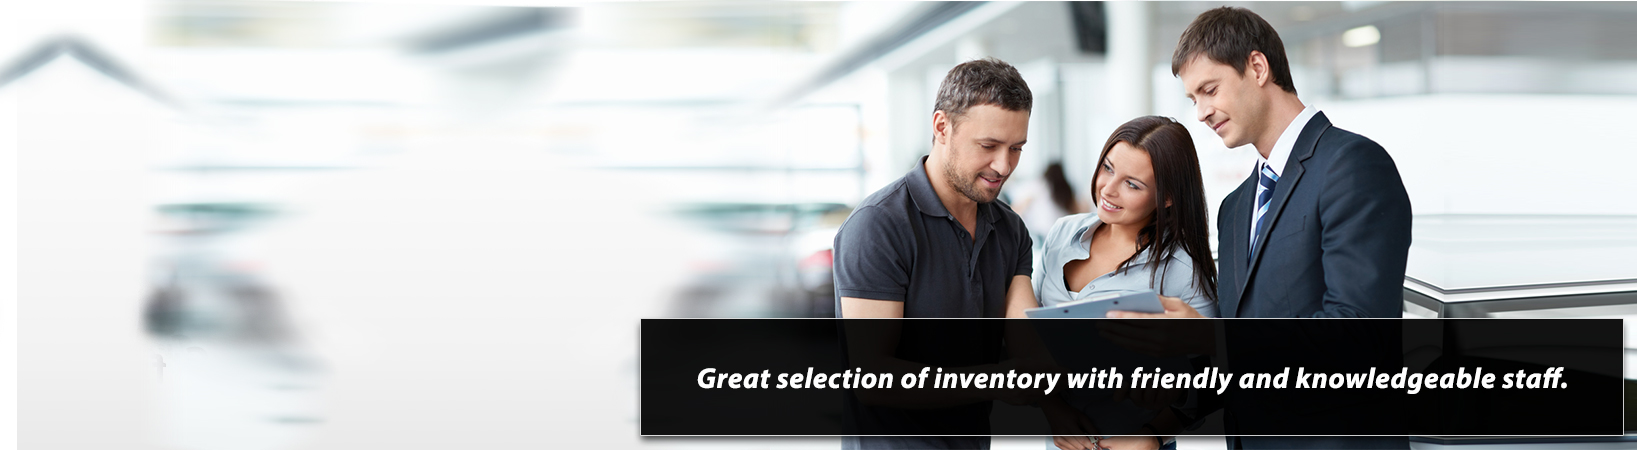 Empire Motors has a great selection of inventory, and a friendly and knowledgeable staff.